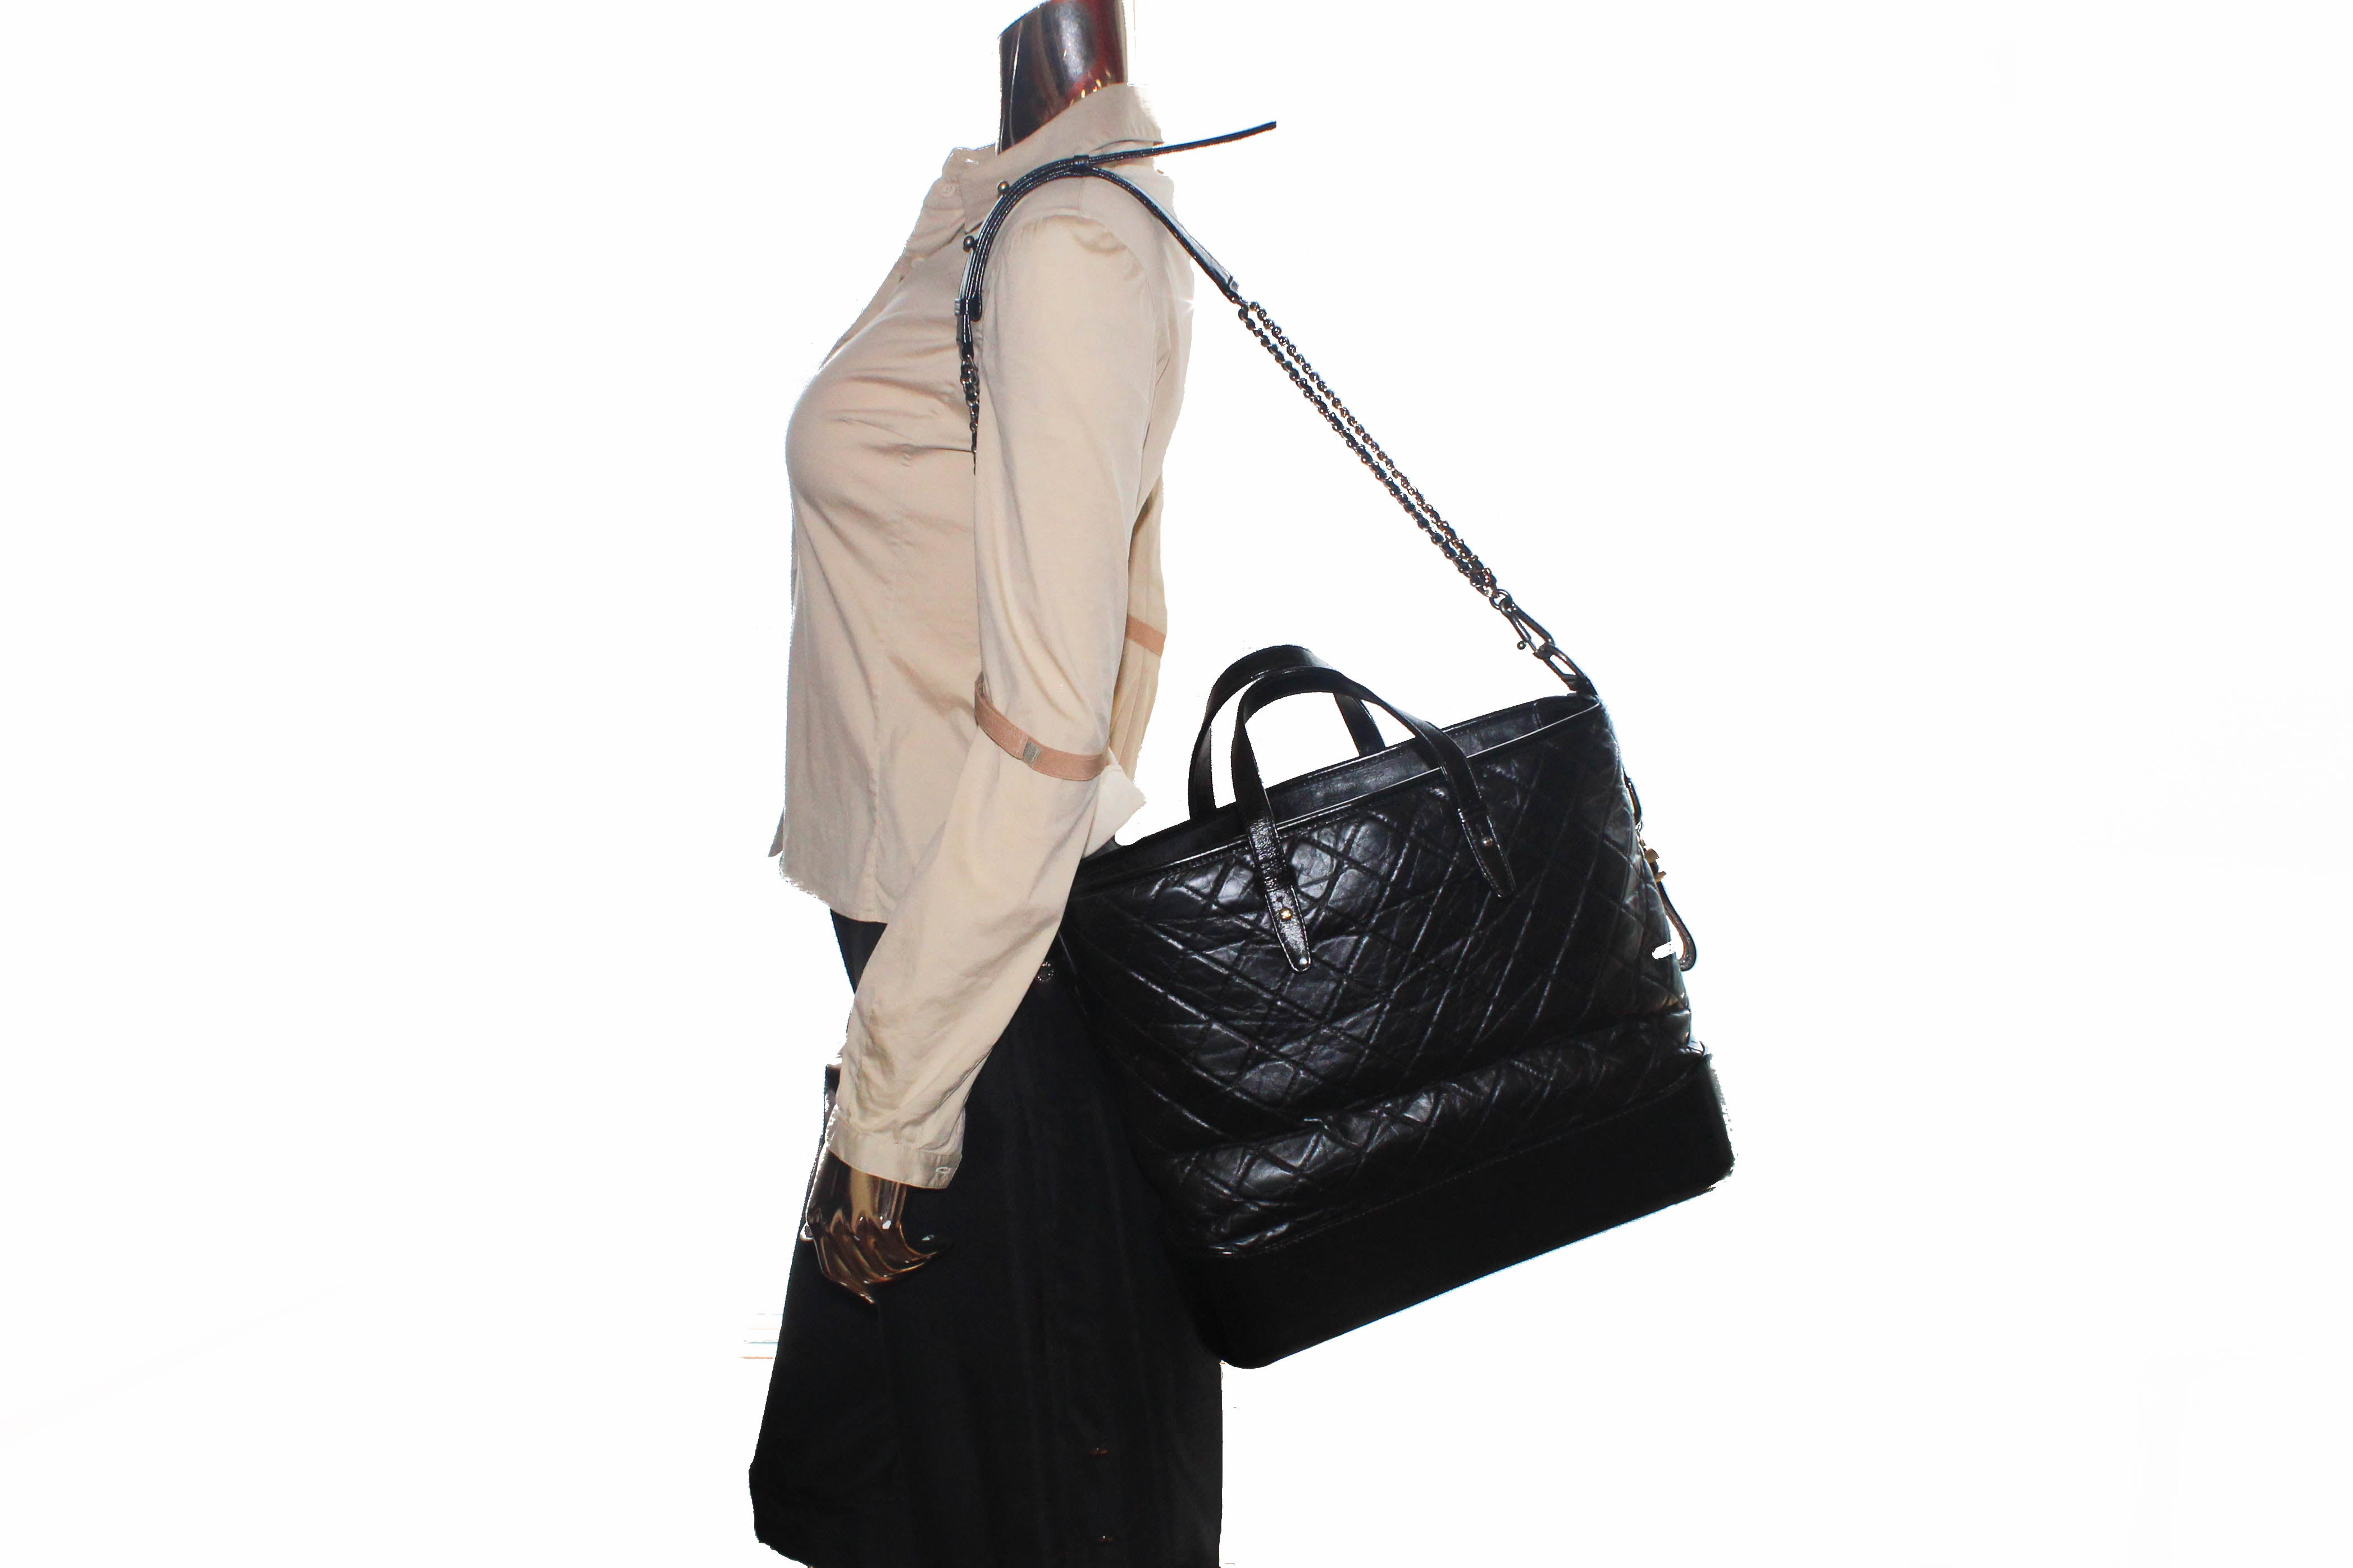 Authentic Chanel Black Aged Calfskin Quilted Large Gabrielle Shopping Tote